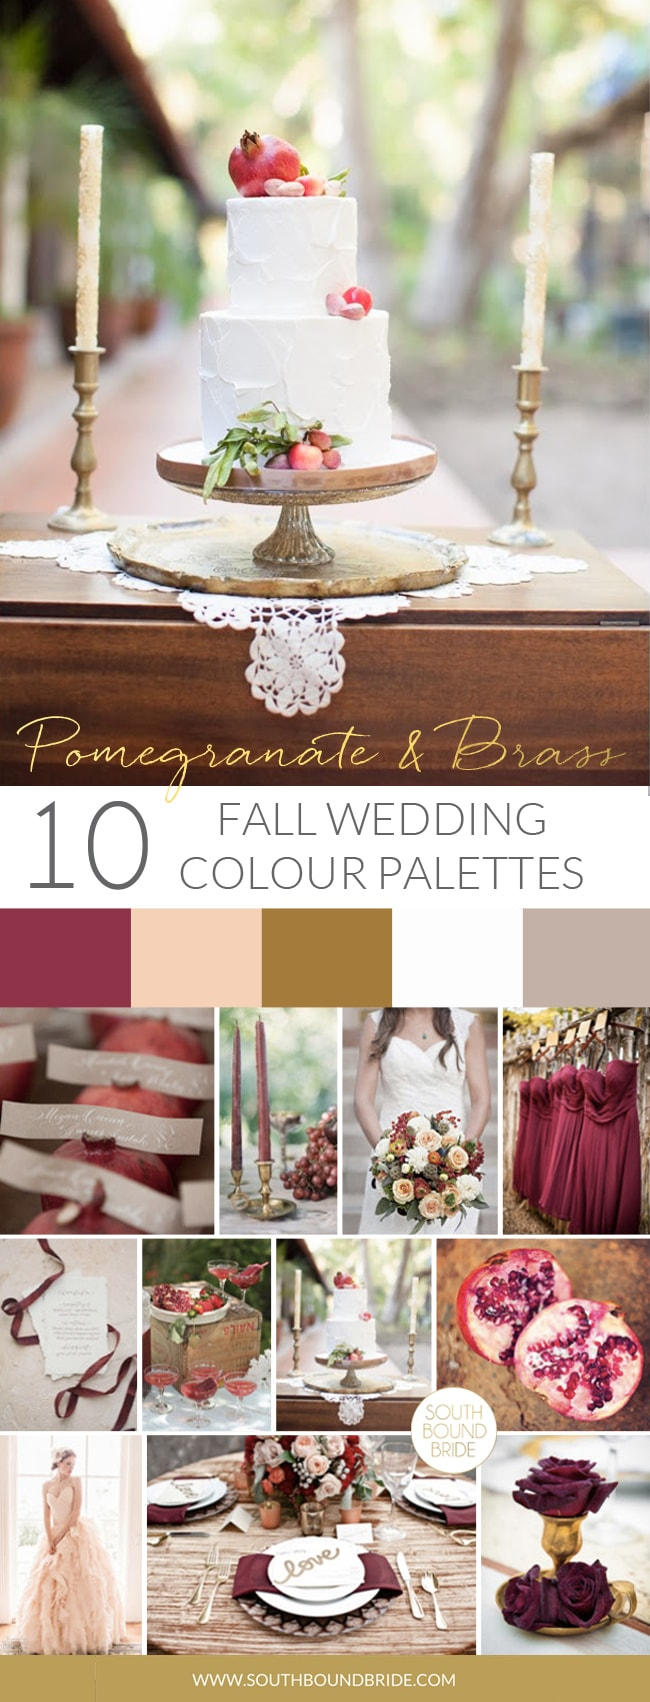 Pomegranate & Brass Fall Wedding Palette | SouthBound Bride